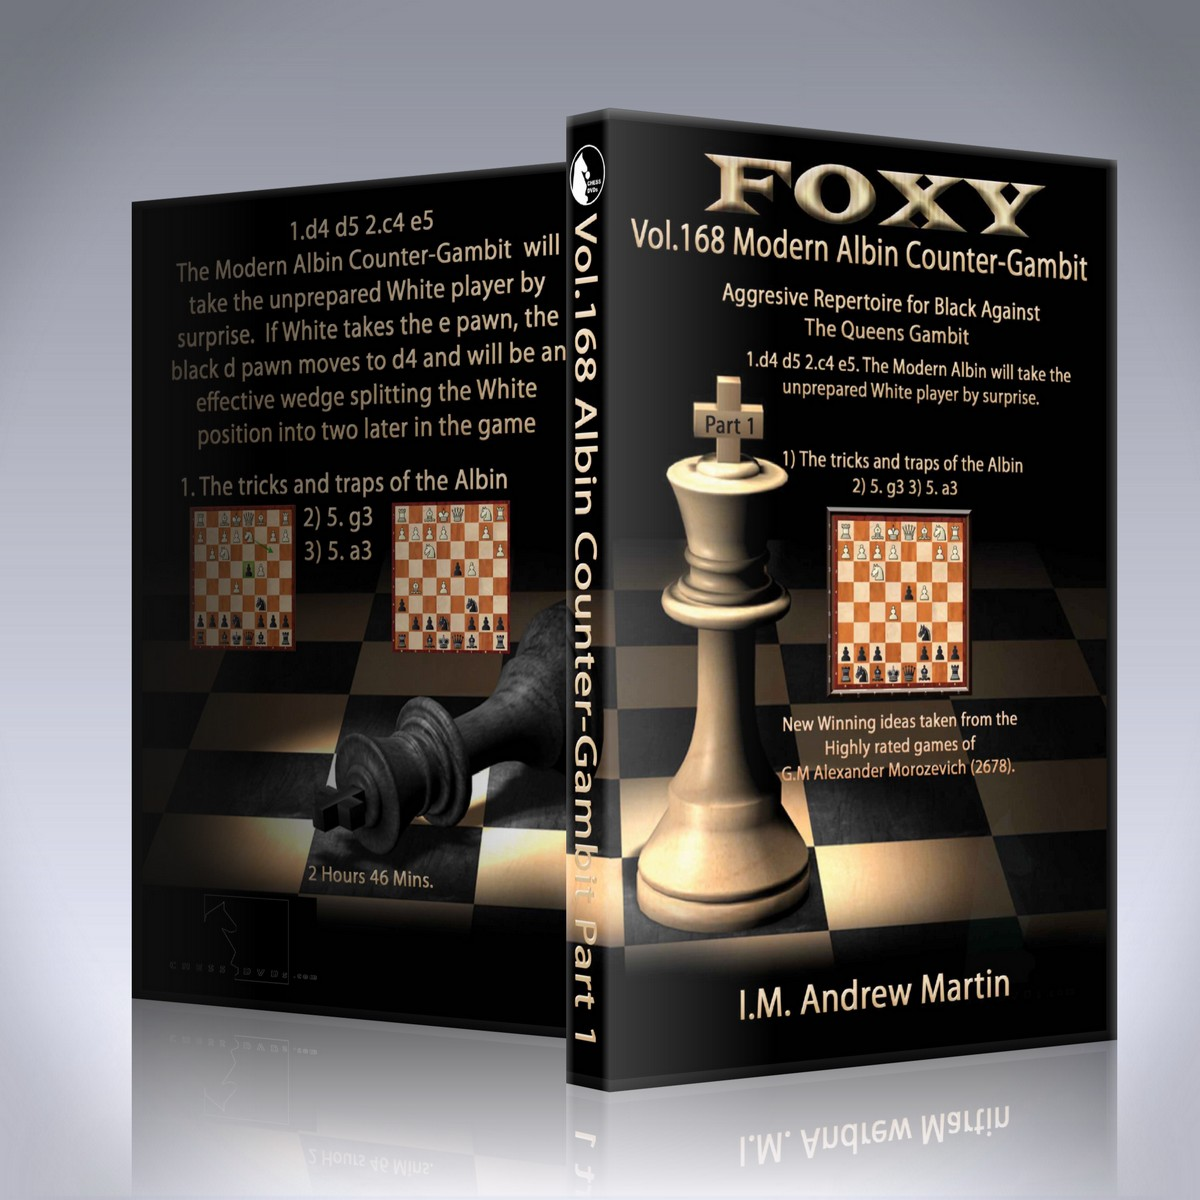 Modern Albin Counter-Gambit: Aggressive Repertoire for Black Part 1 – Andrew Martin